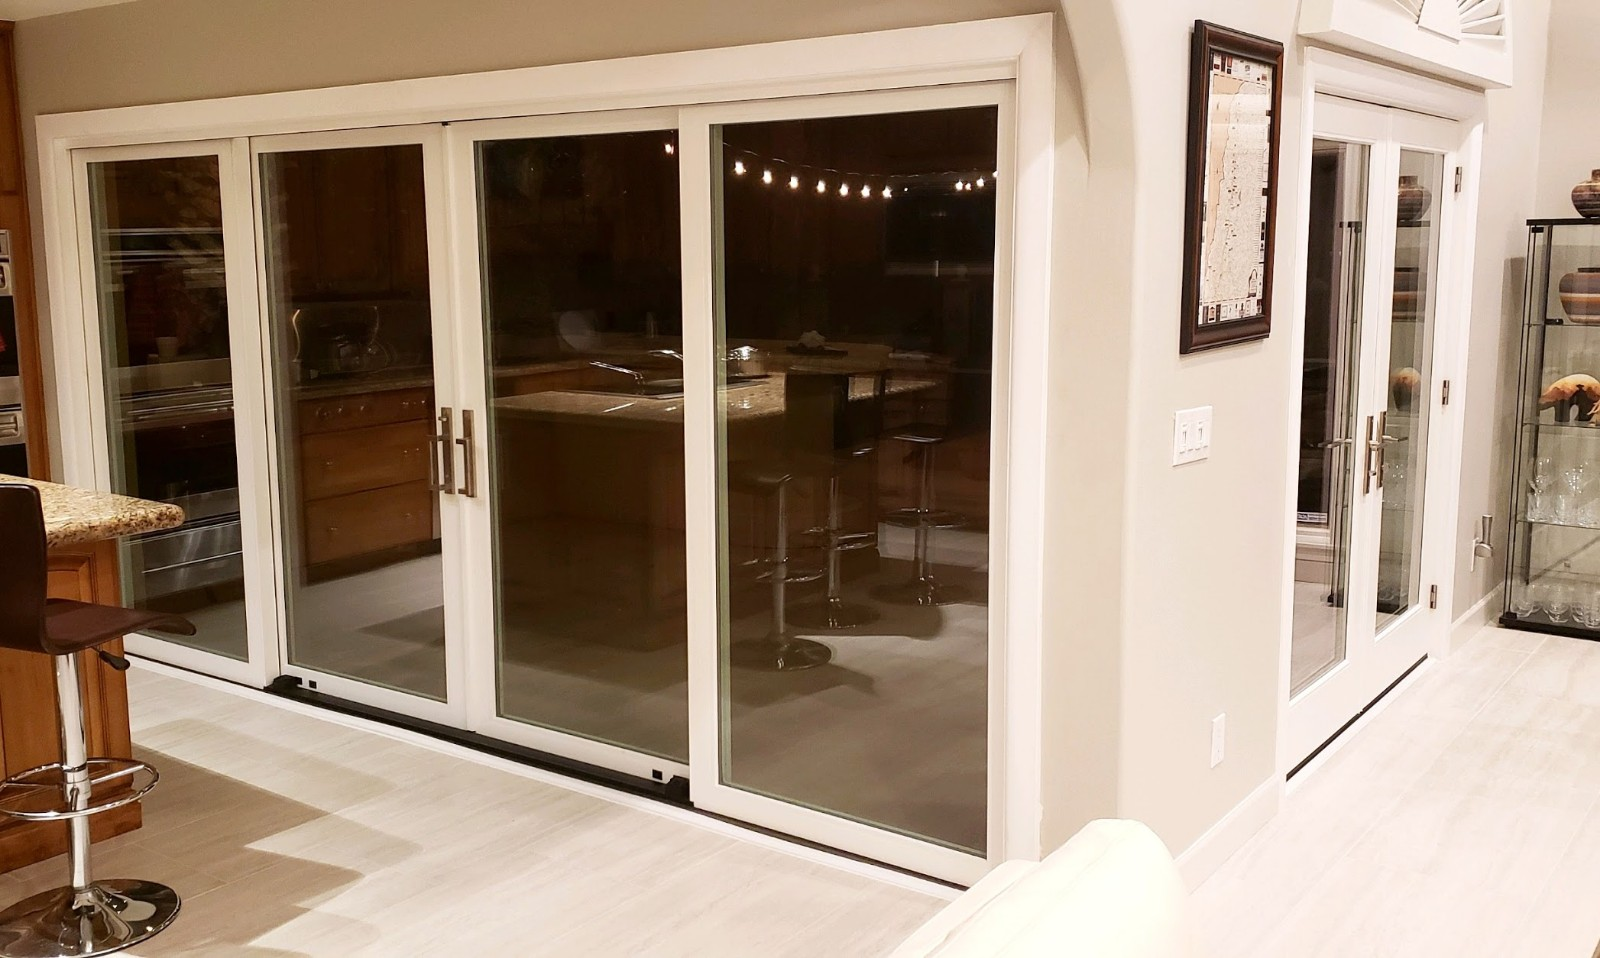 Arizona Window and Door in Scottsdale and Tucson showing french sliding doors